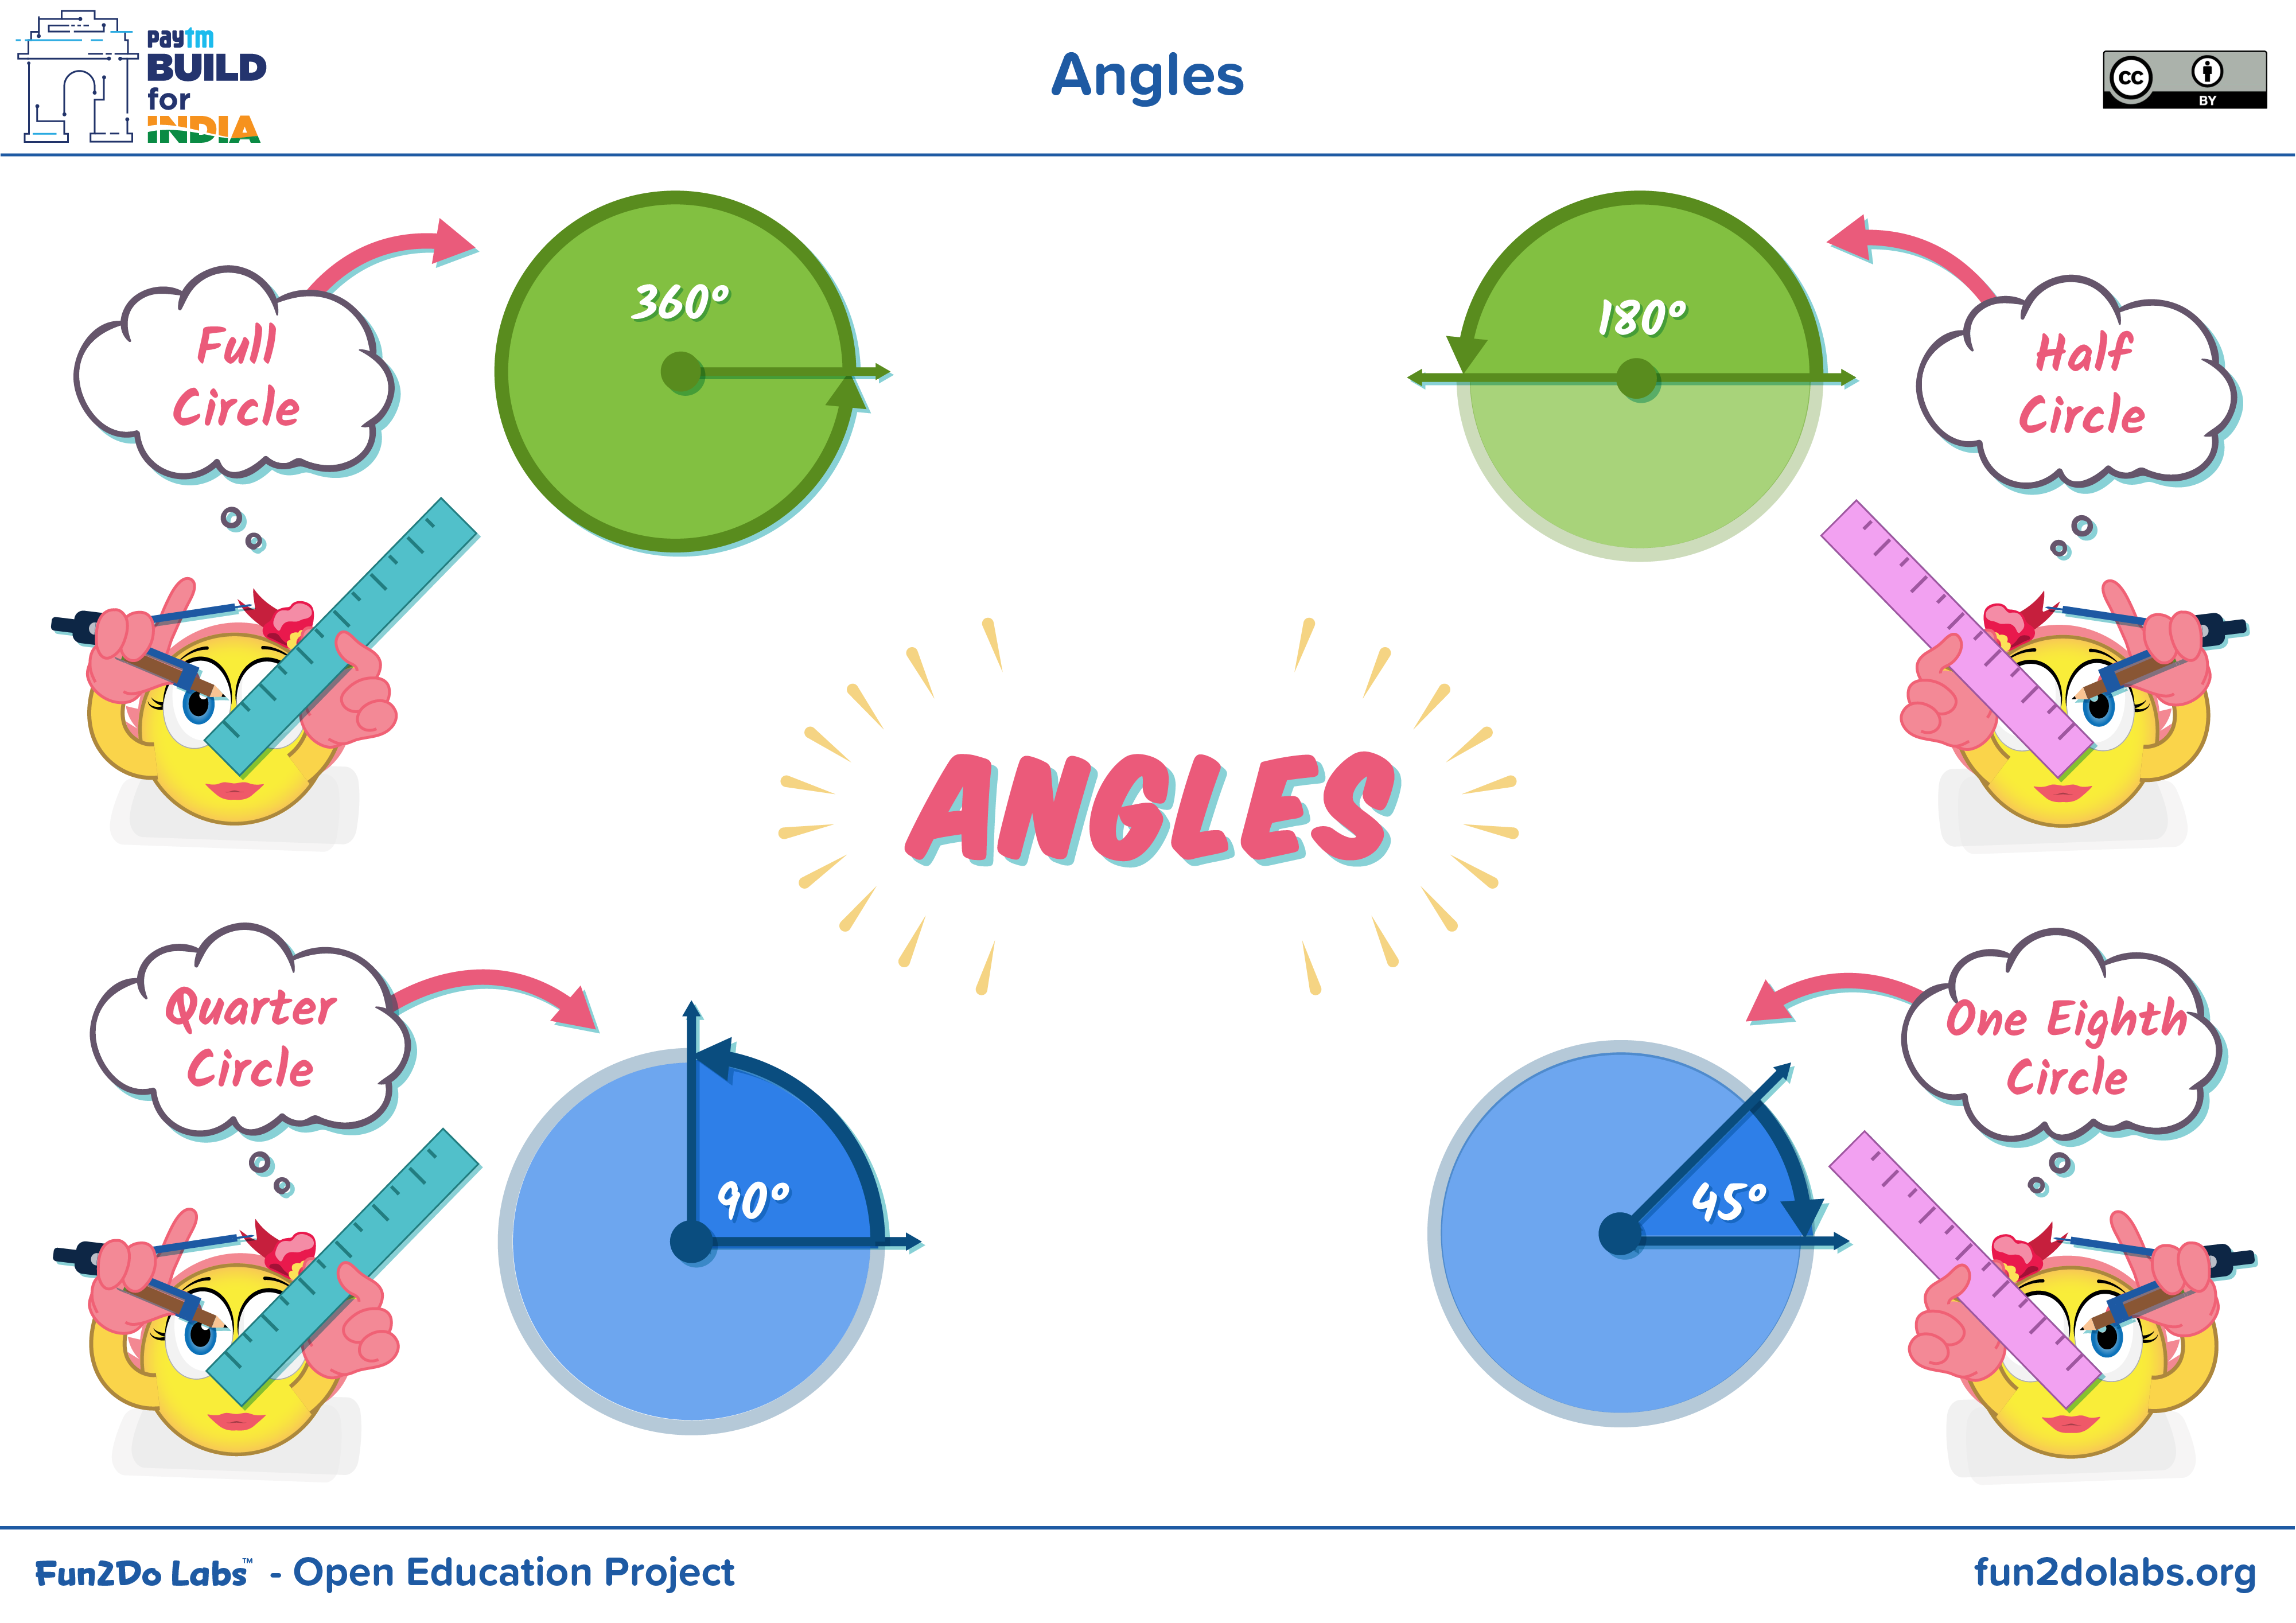 What Is Full Circle What Is Half Circle Angles Of Circle